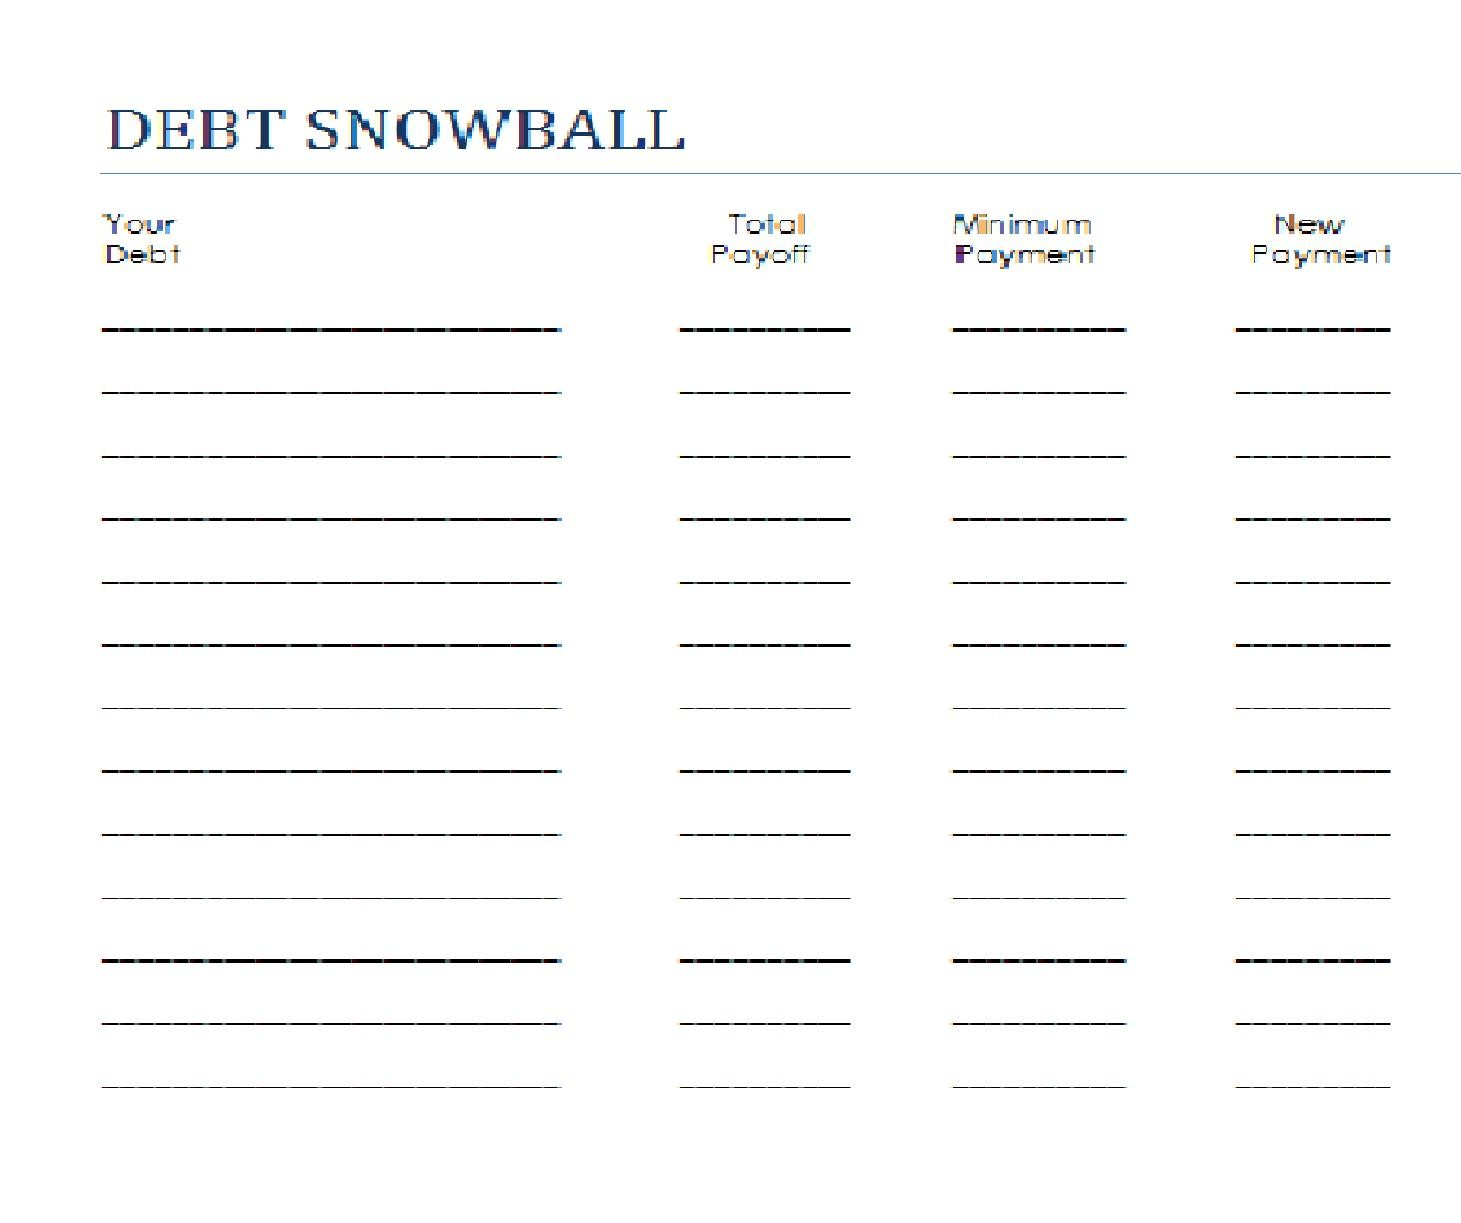 Free Worksheet Dave Ramsey Debt Snowball Worksheet debt snowball calculator template free dave ramsey form 1275 1650